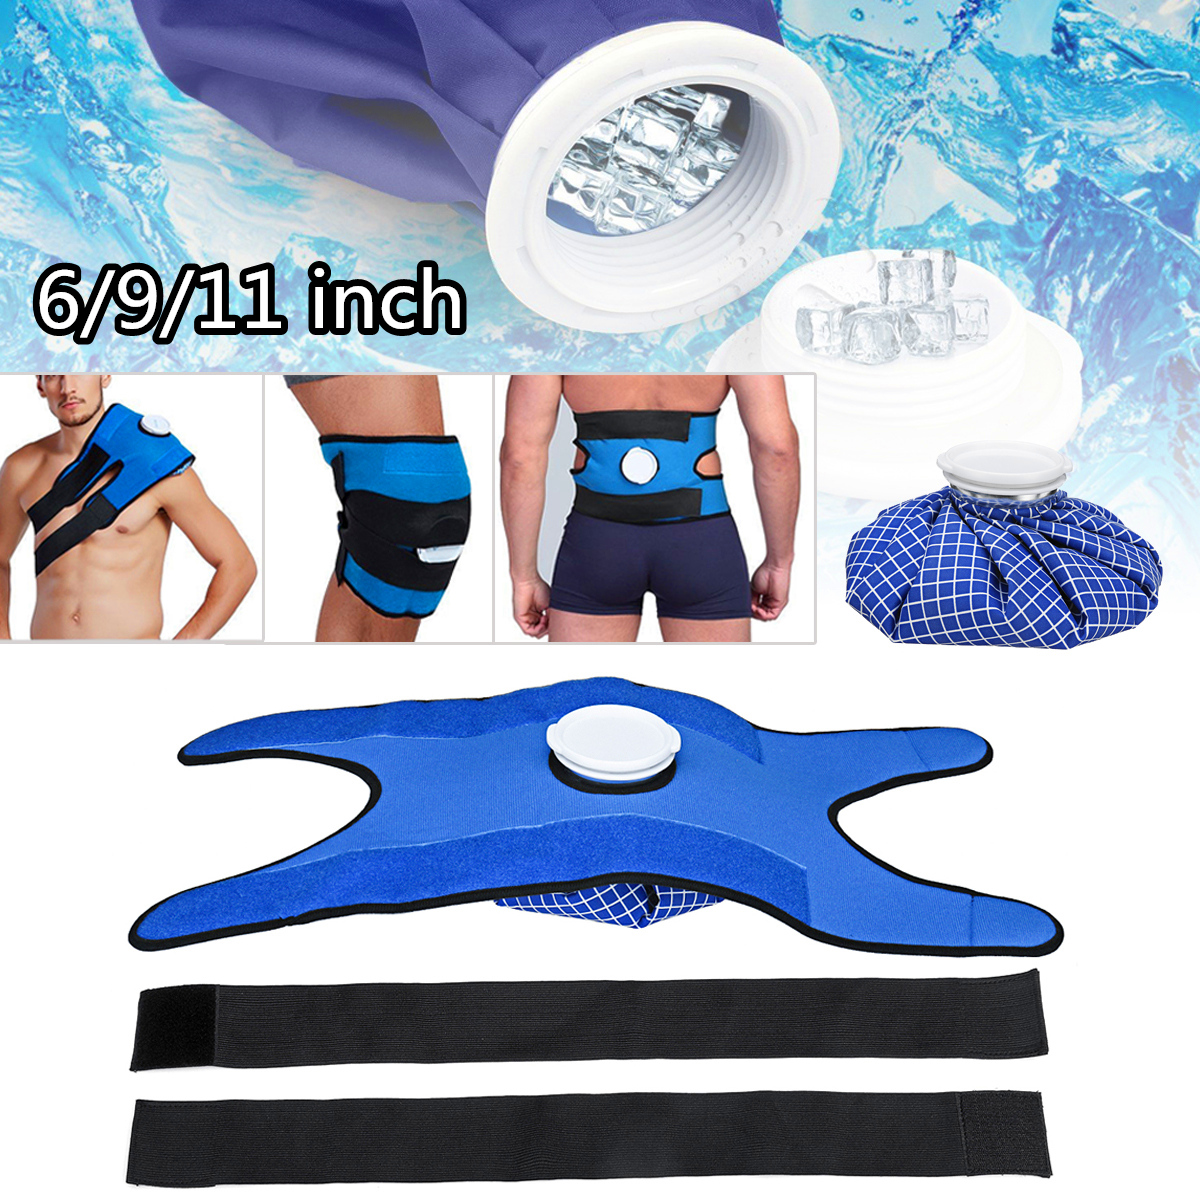 Pain Relief Hot Cold Therapy Reusable Ice Bag Pack Wrap for Knee Shoulder Back Shoulder Knee Waist Relaxing Compress Health Care